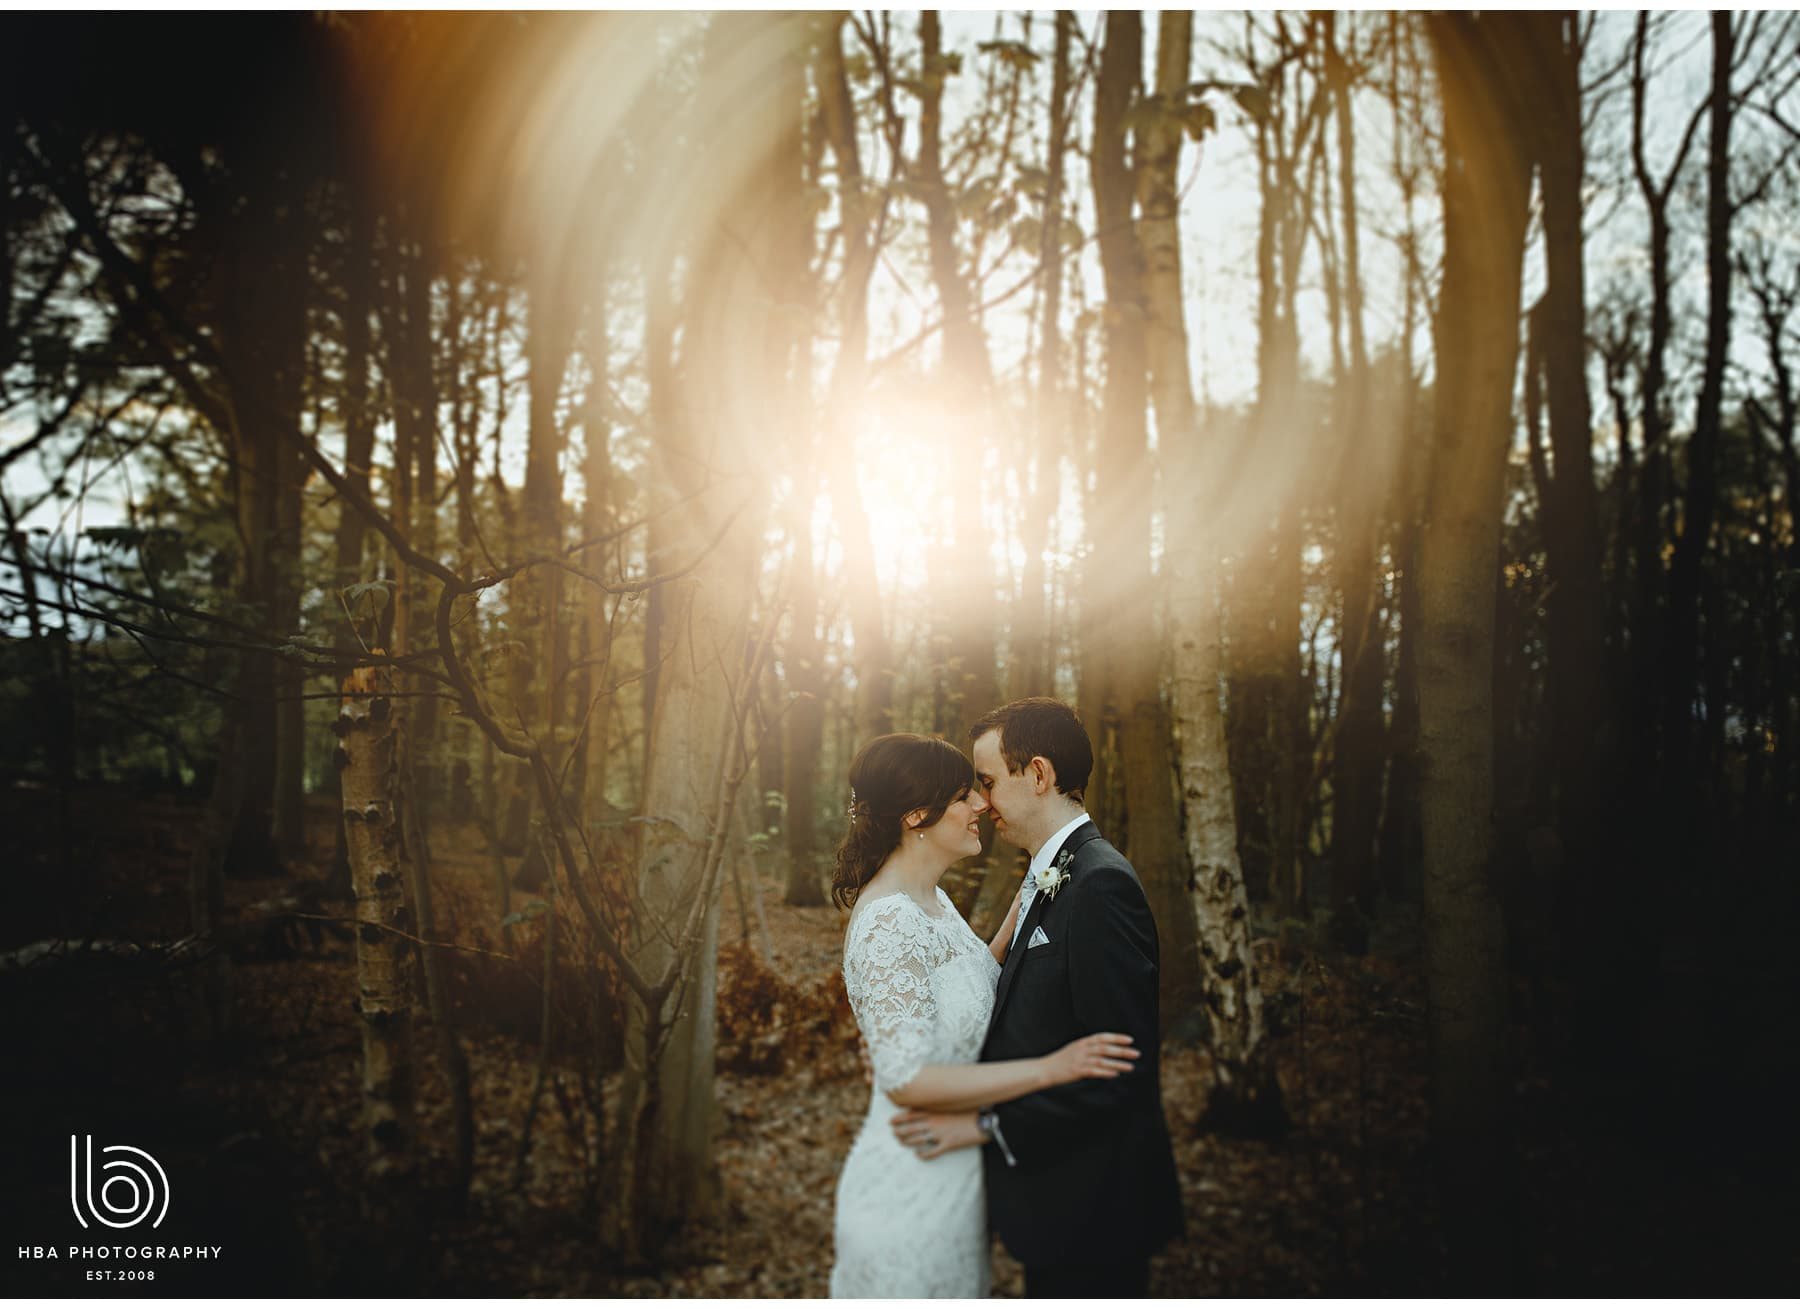 the bride & groom in the woods in golden hour